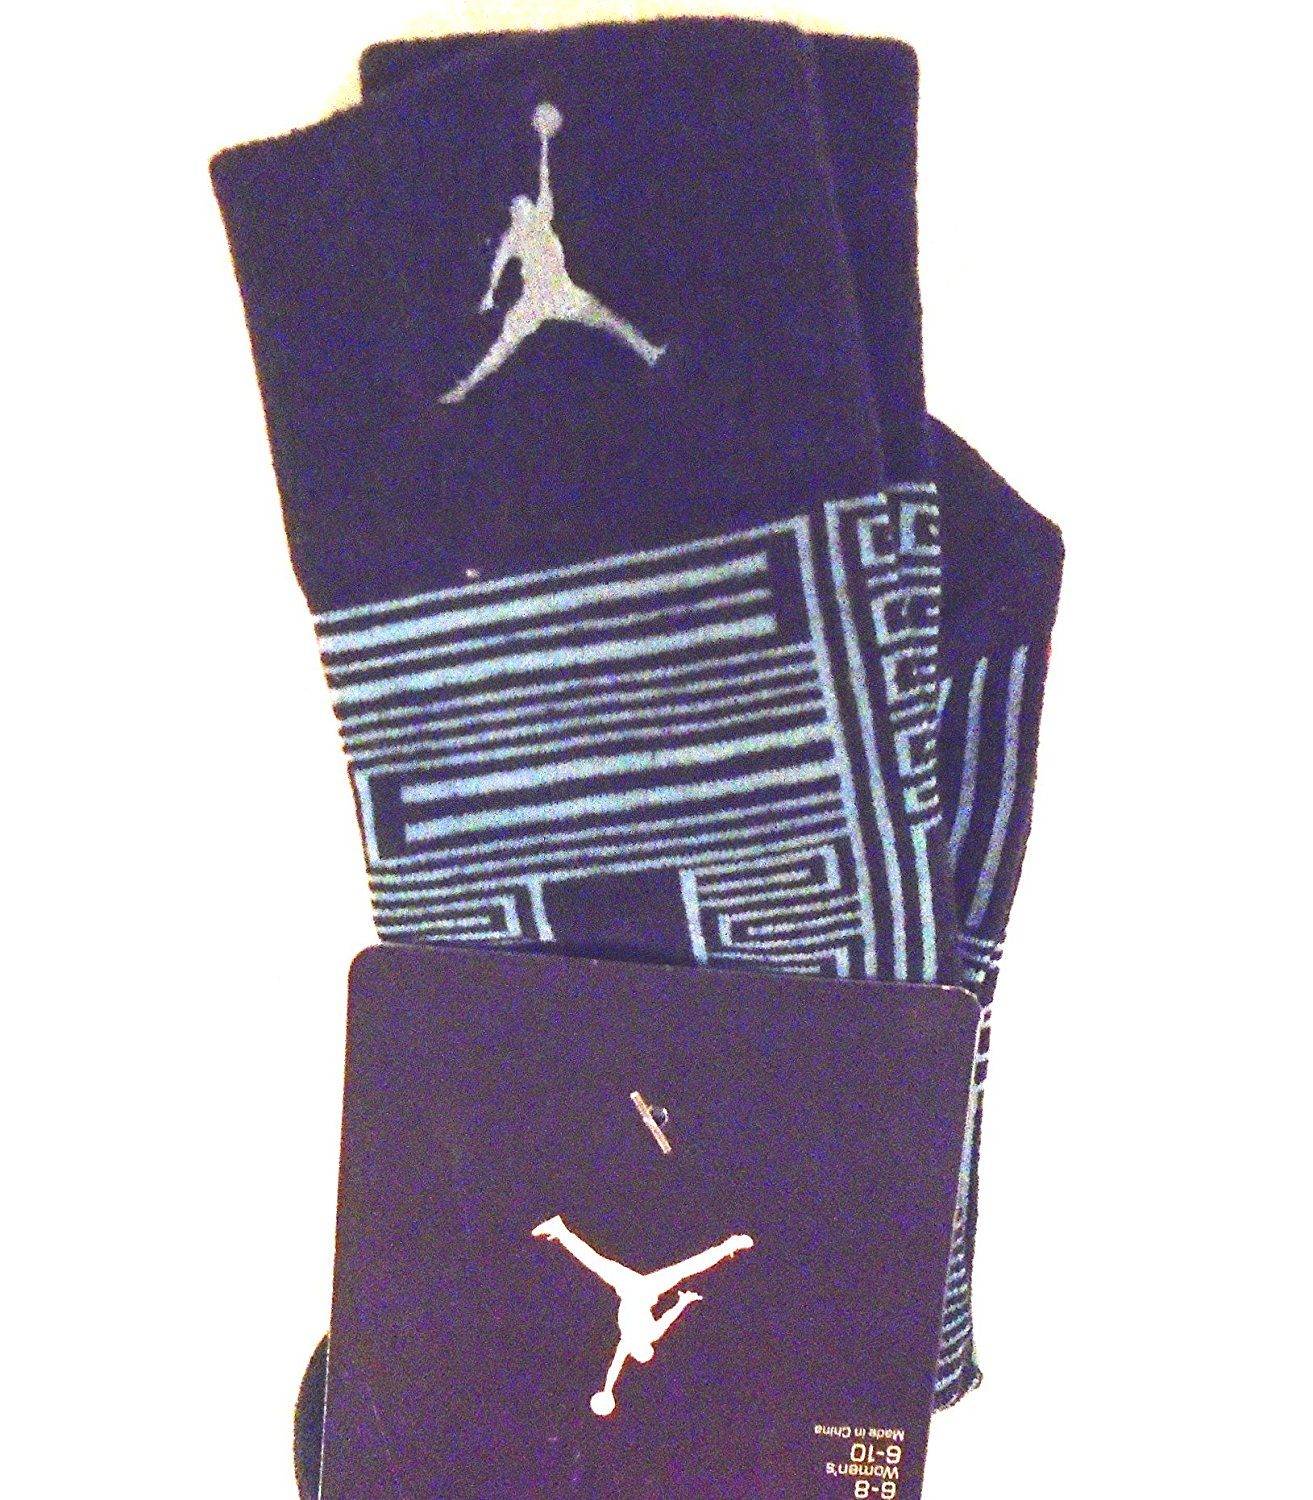 NIKE Air Jordan Retro XI Crew Basketball Socks (Black/Game Royal Blue) MED